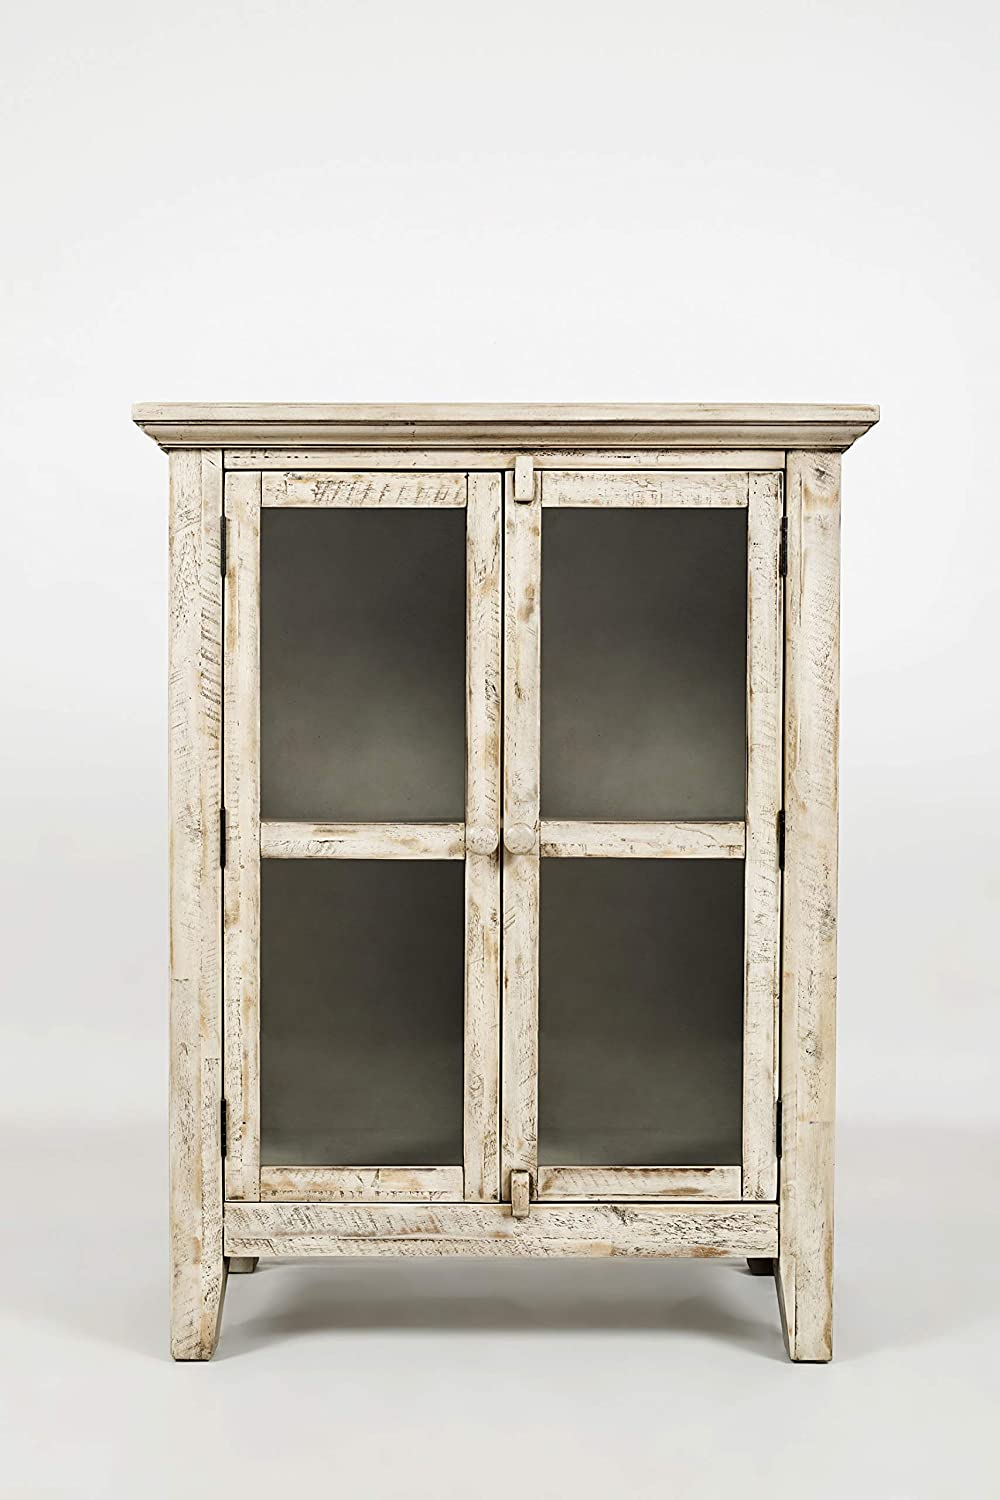 Amazoncom Benzara Bm181666 Distressed Wooden Accent Cabinet With